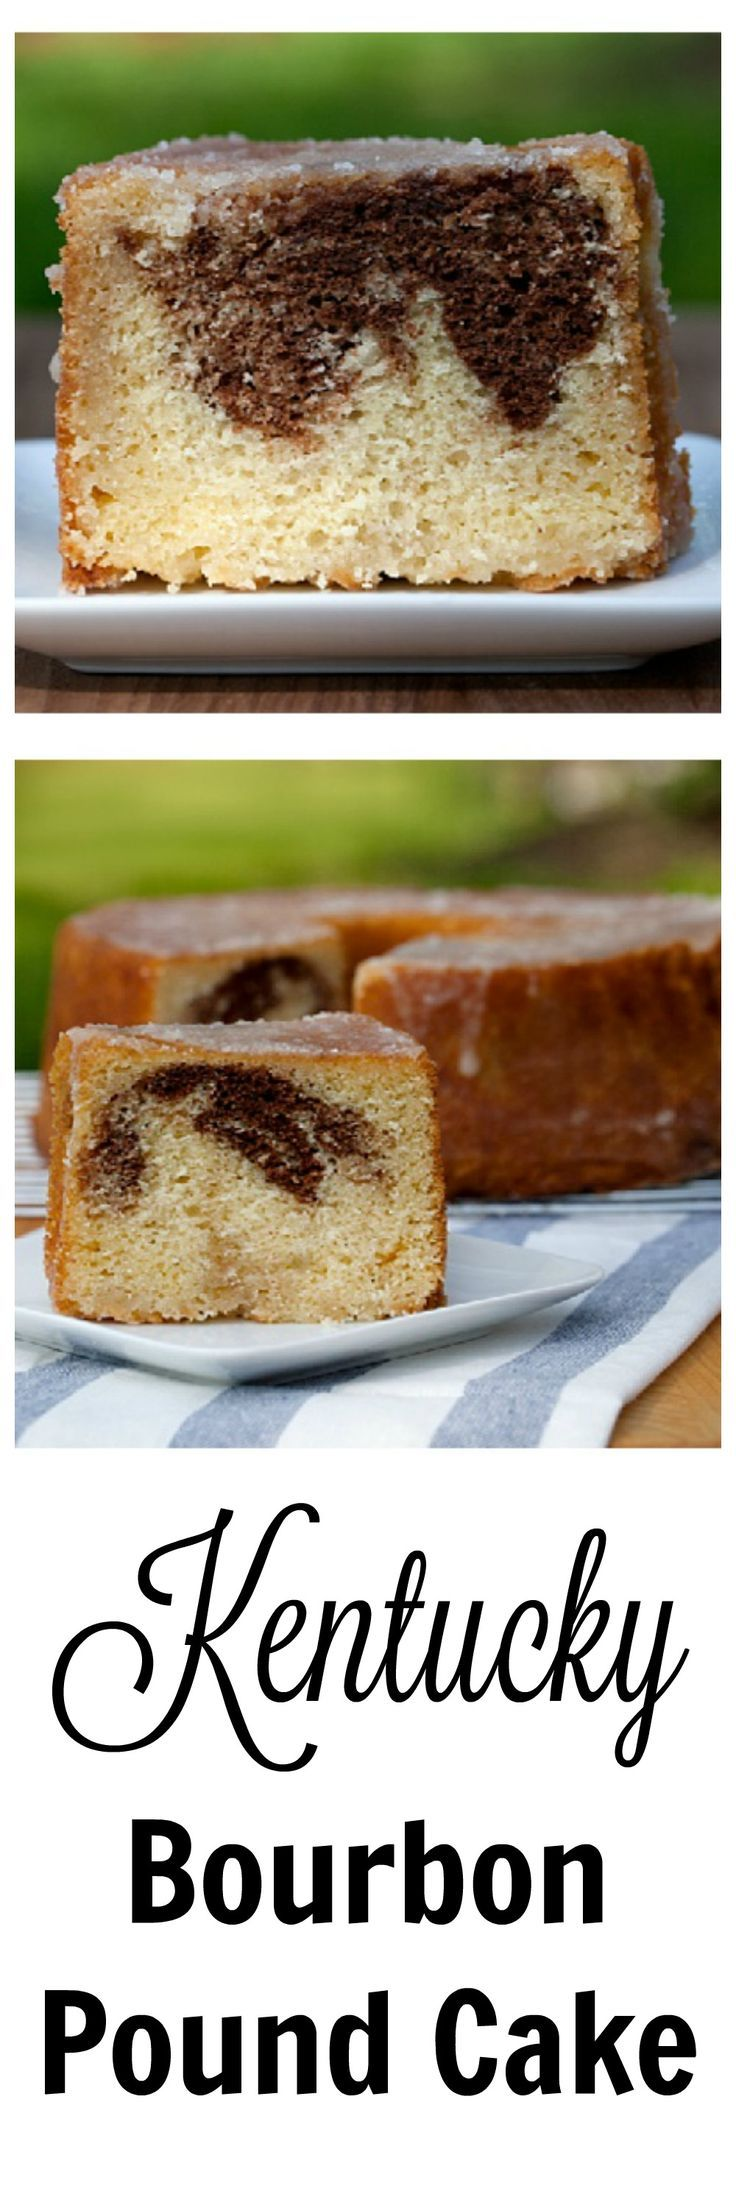 Pound cakes are a southern tradition. This bourbon pound cake is made Kentucky-style with a bourbon glaze and chocolate marbling. #dessert #cake